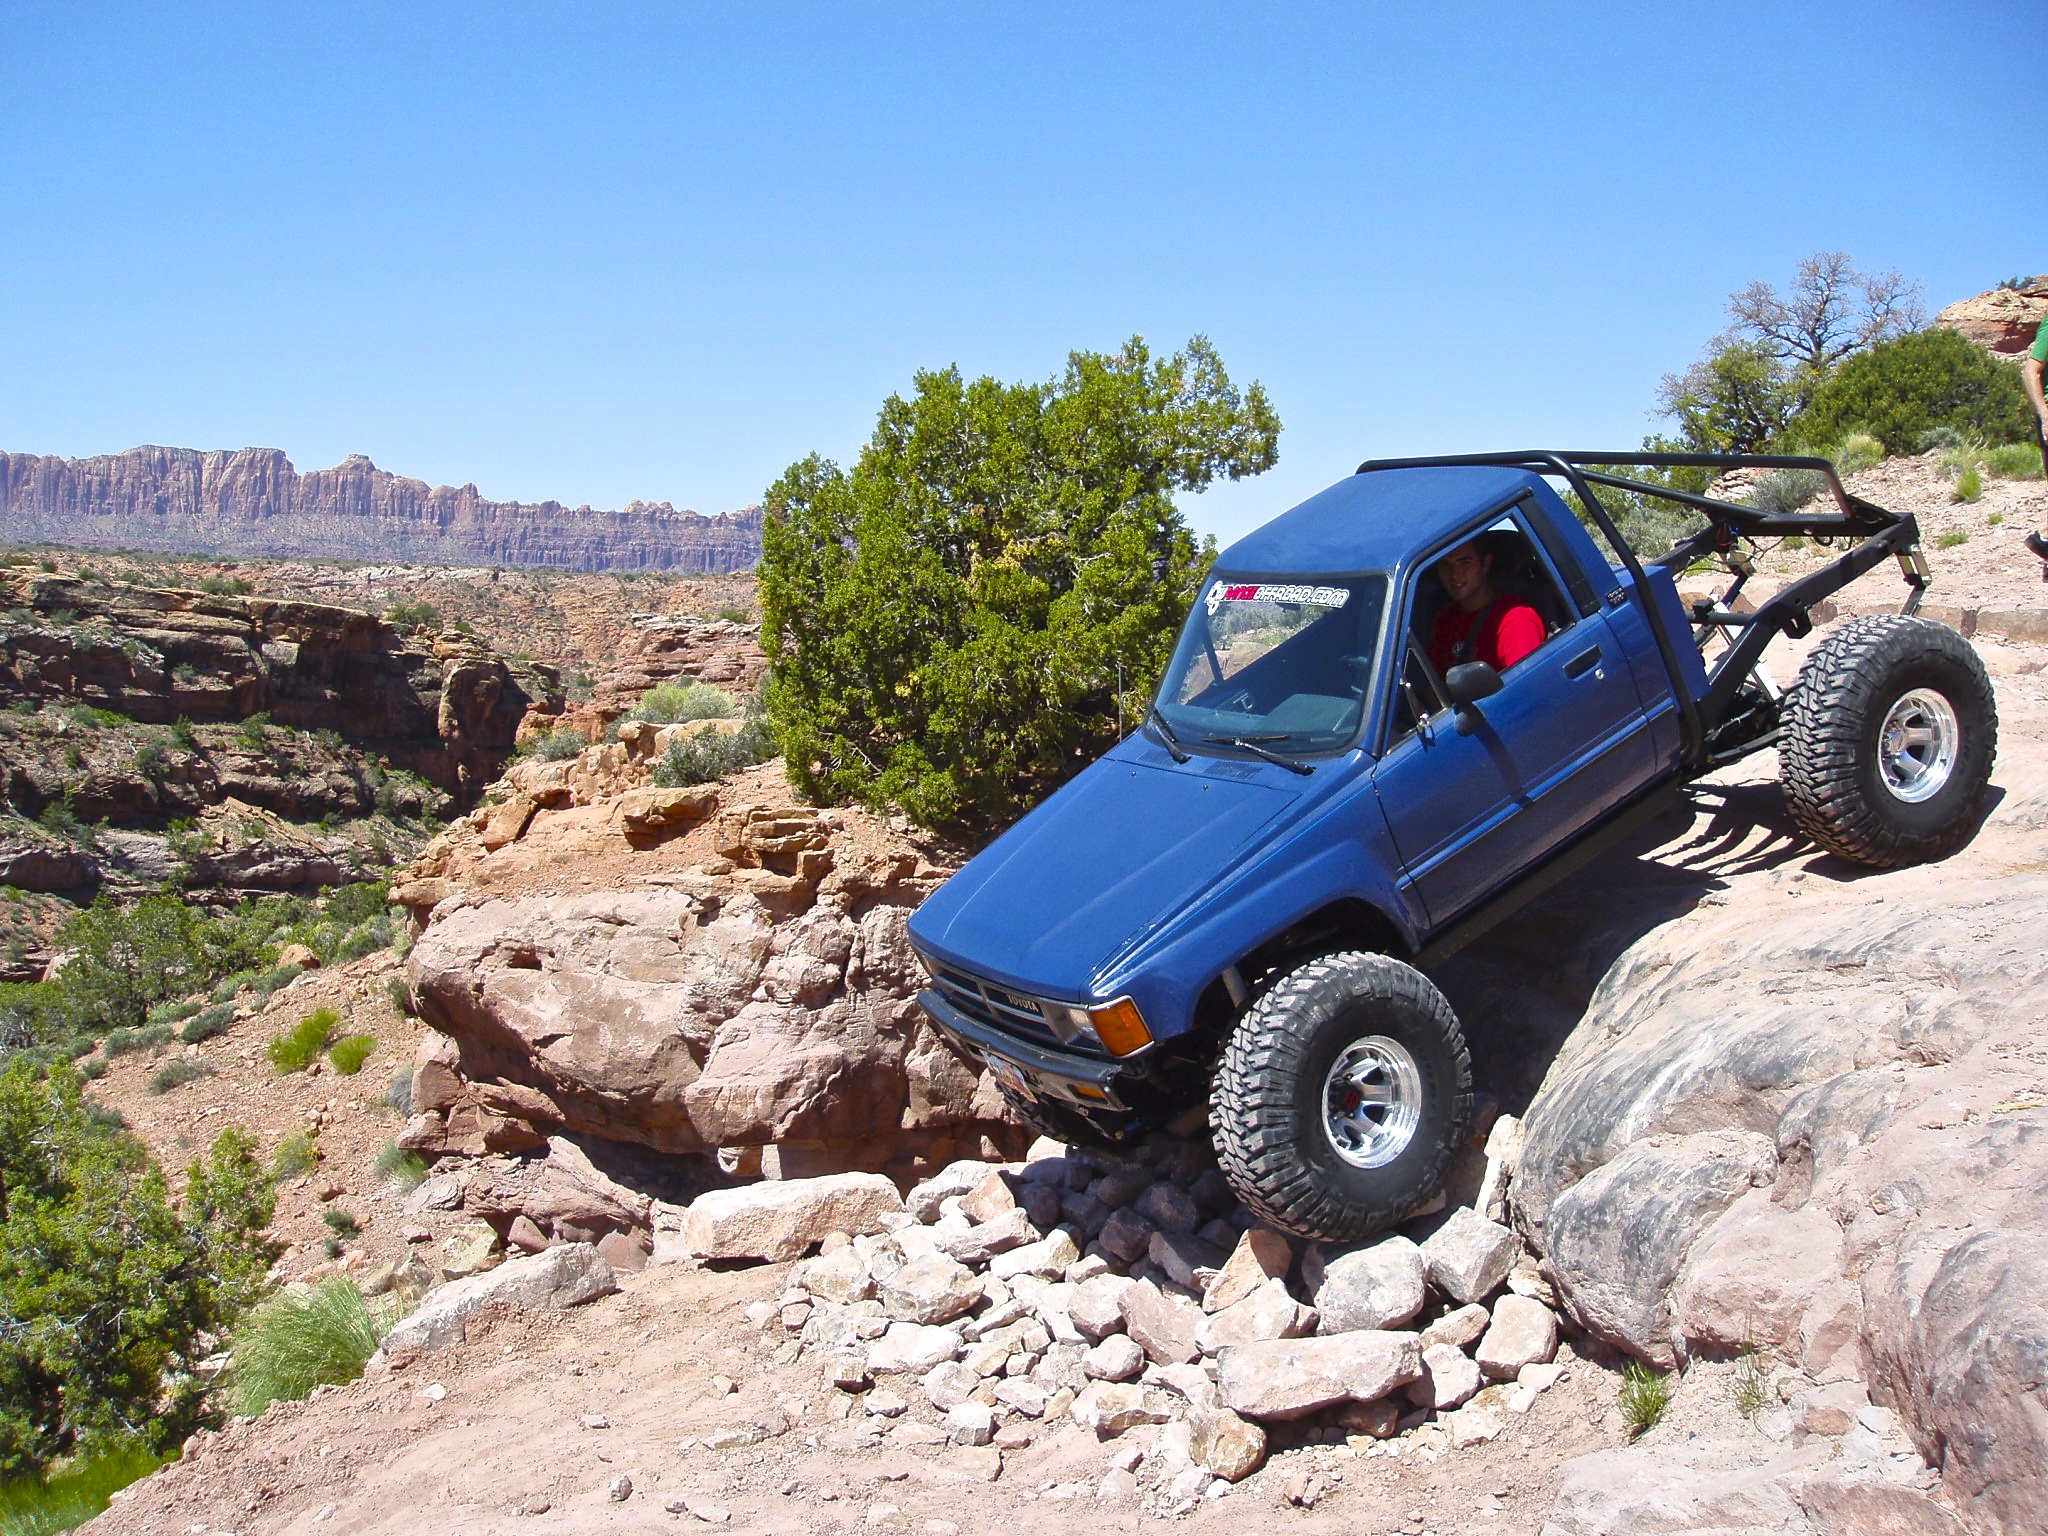 Chris Conk on Trail in Moab Utah with his Toyota Pickup